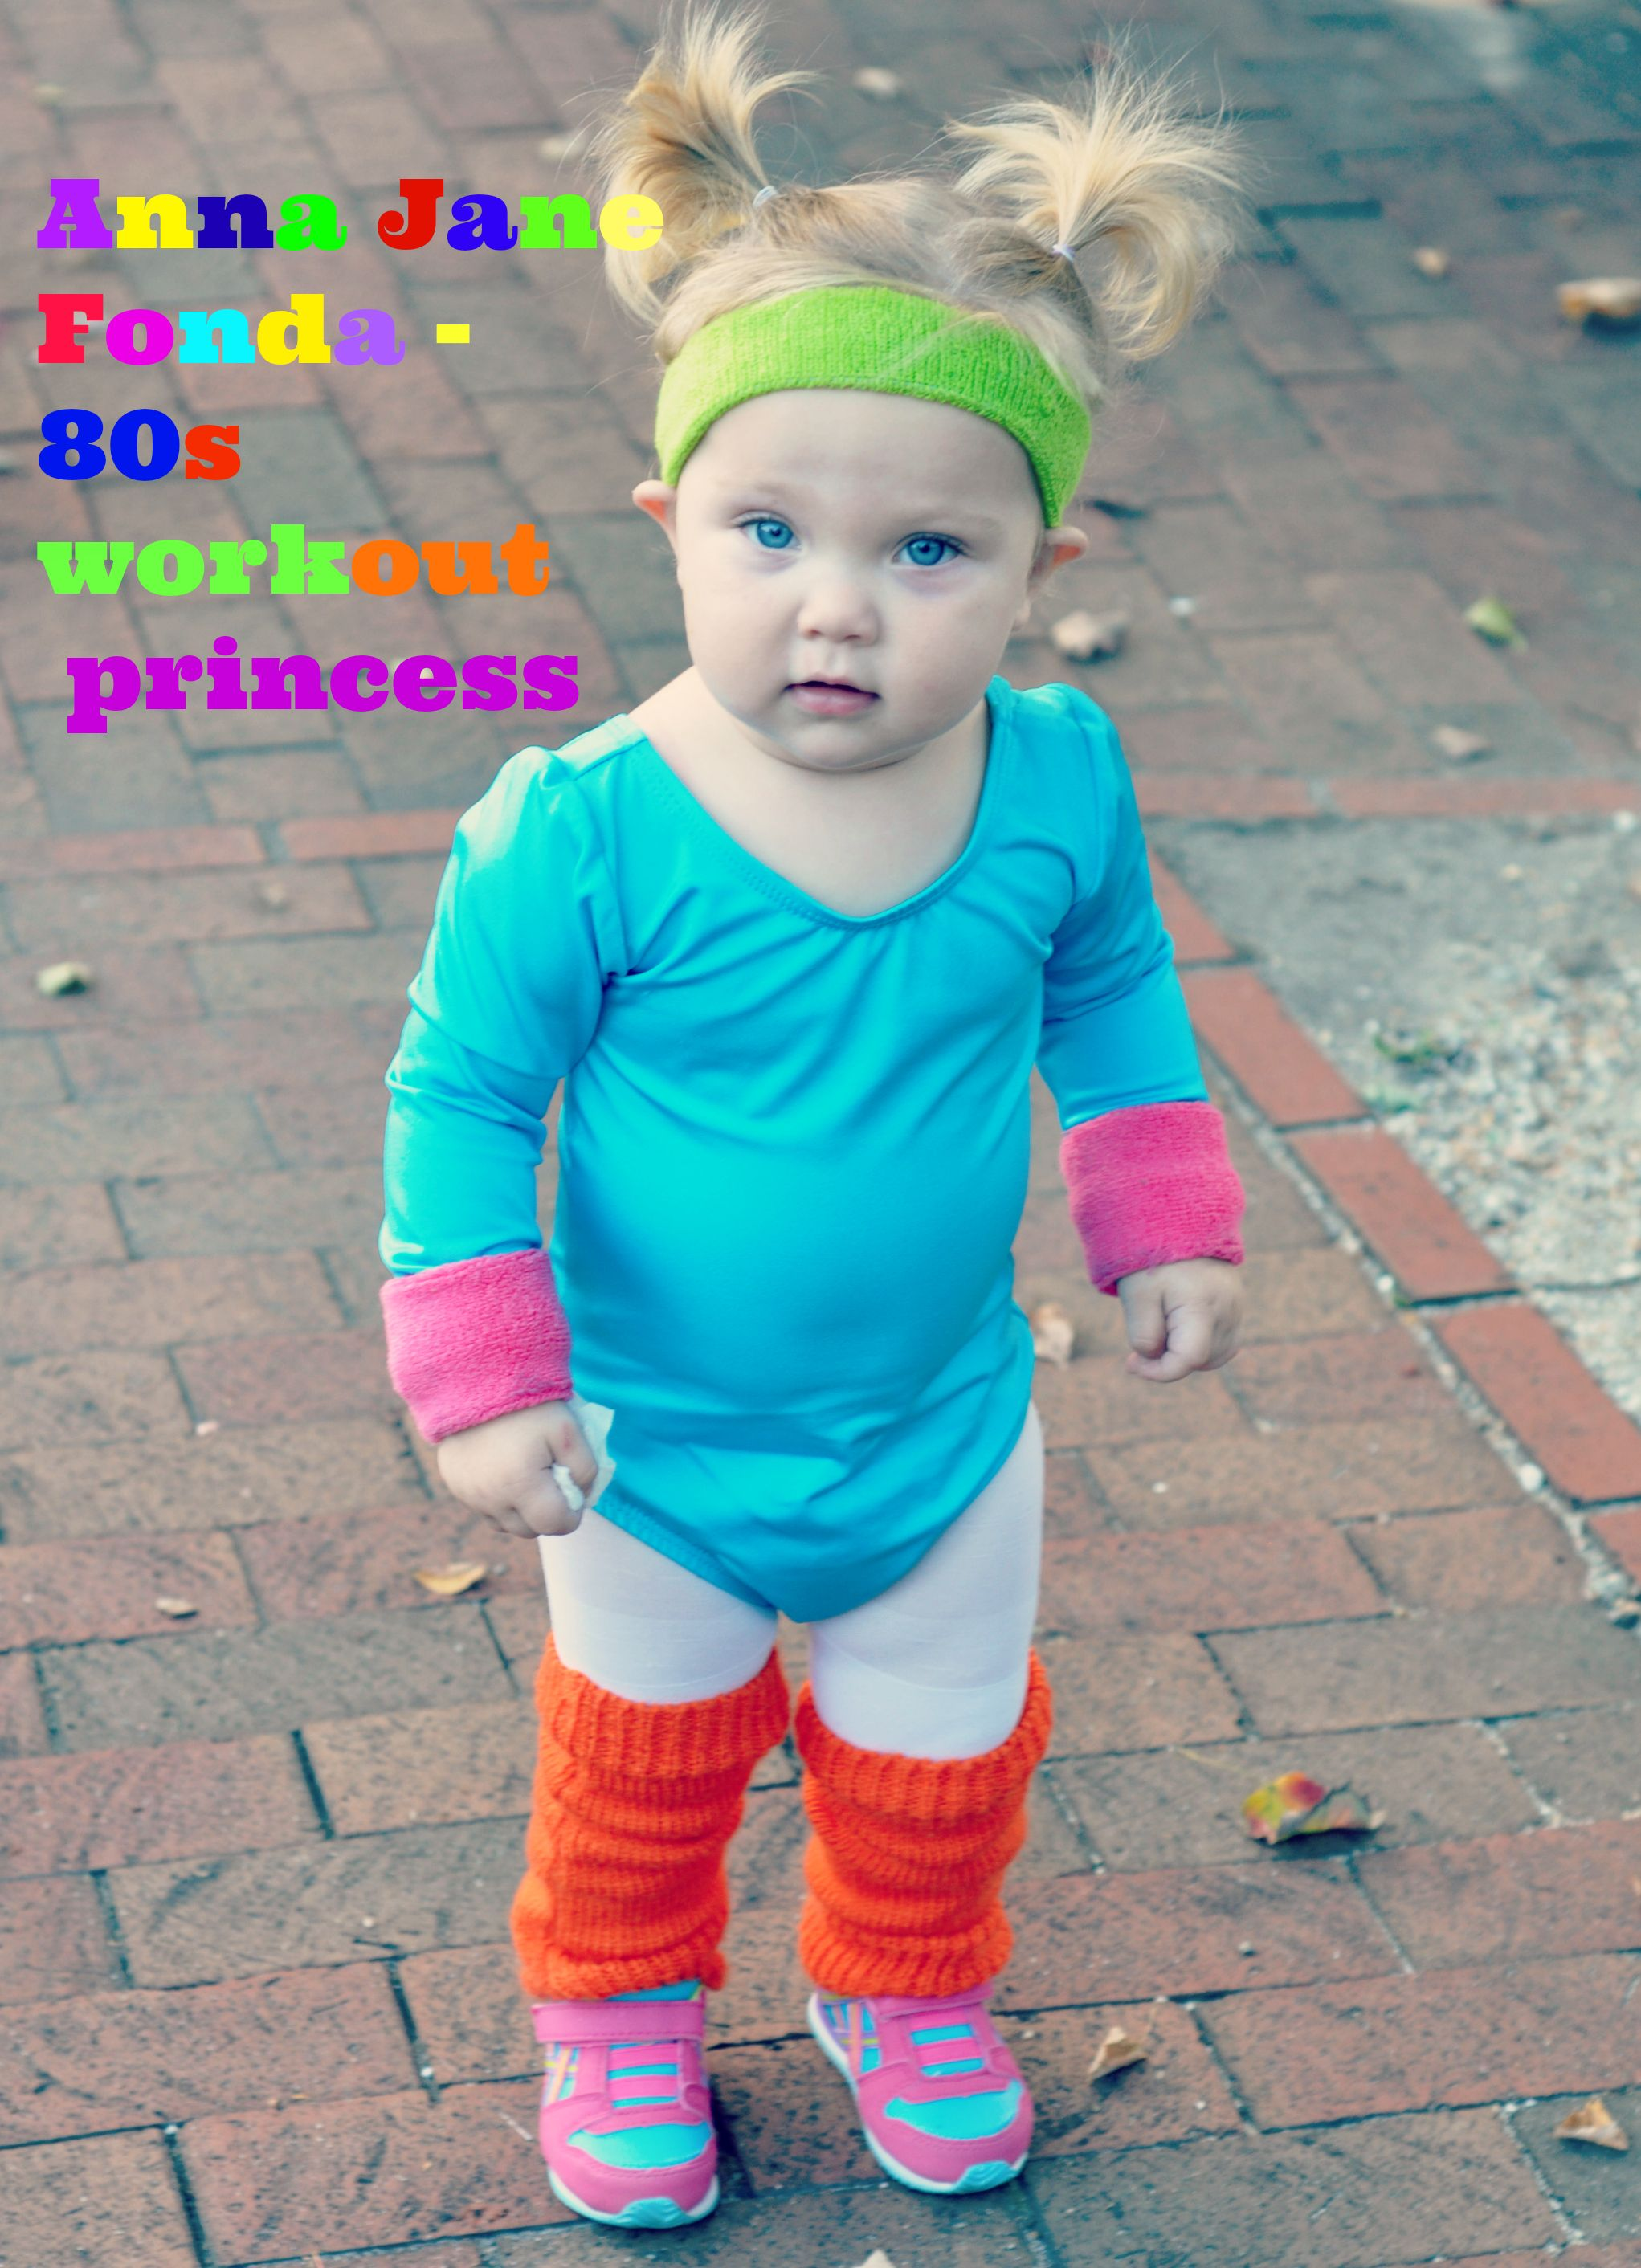 Toddler costume baby  workout halloween fun cute jazzercise also jane fonda   for  rh pinterest